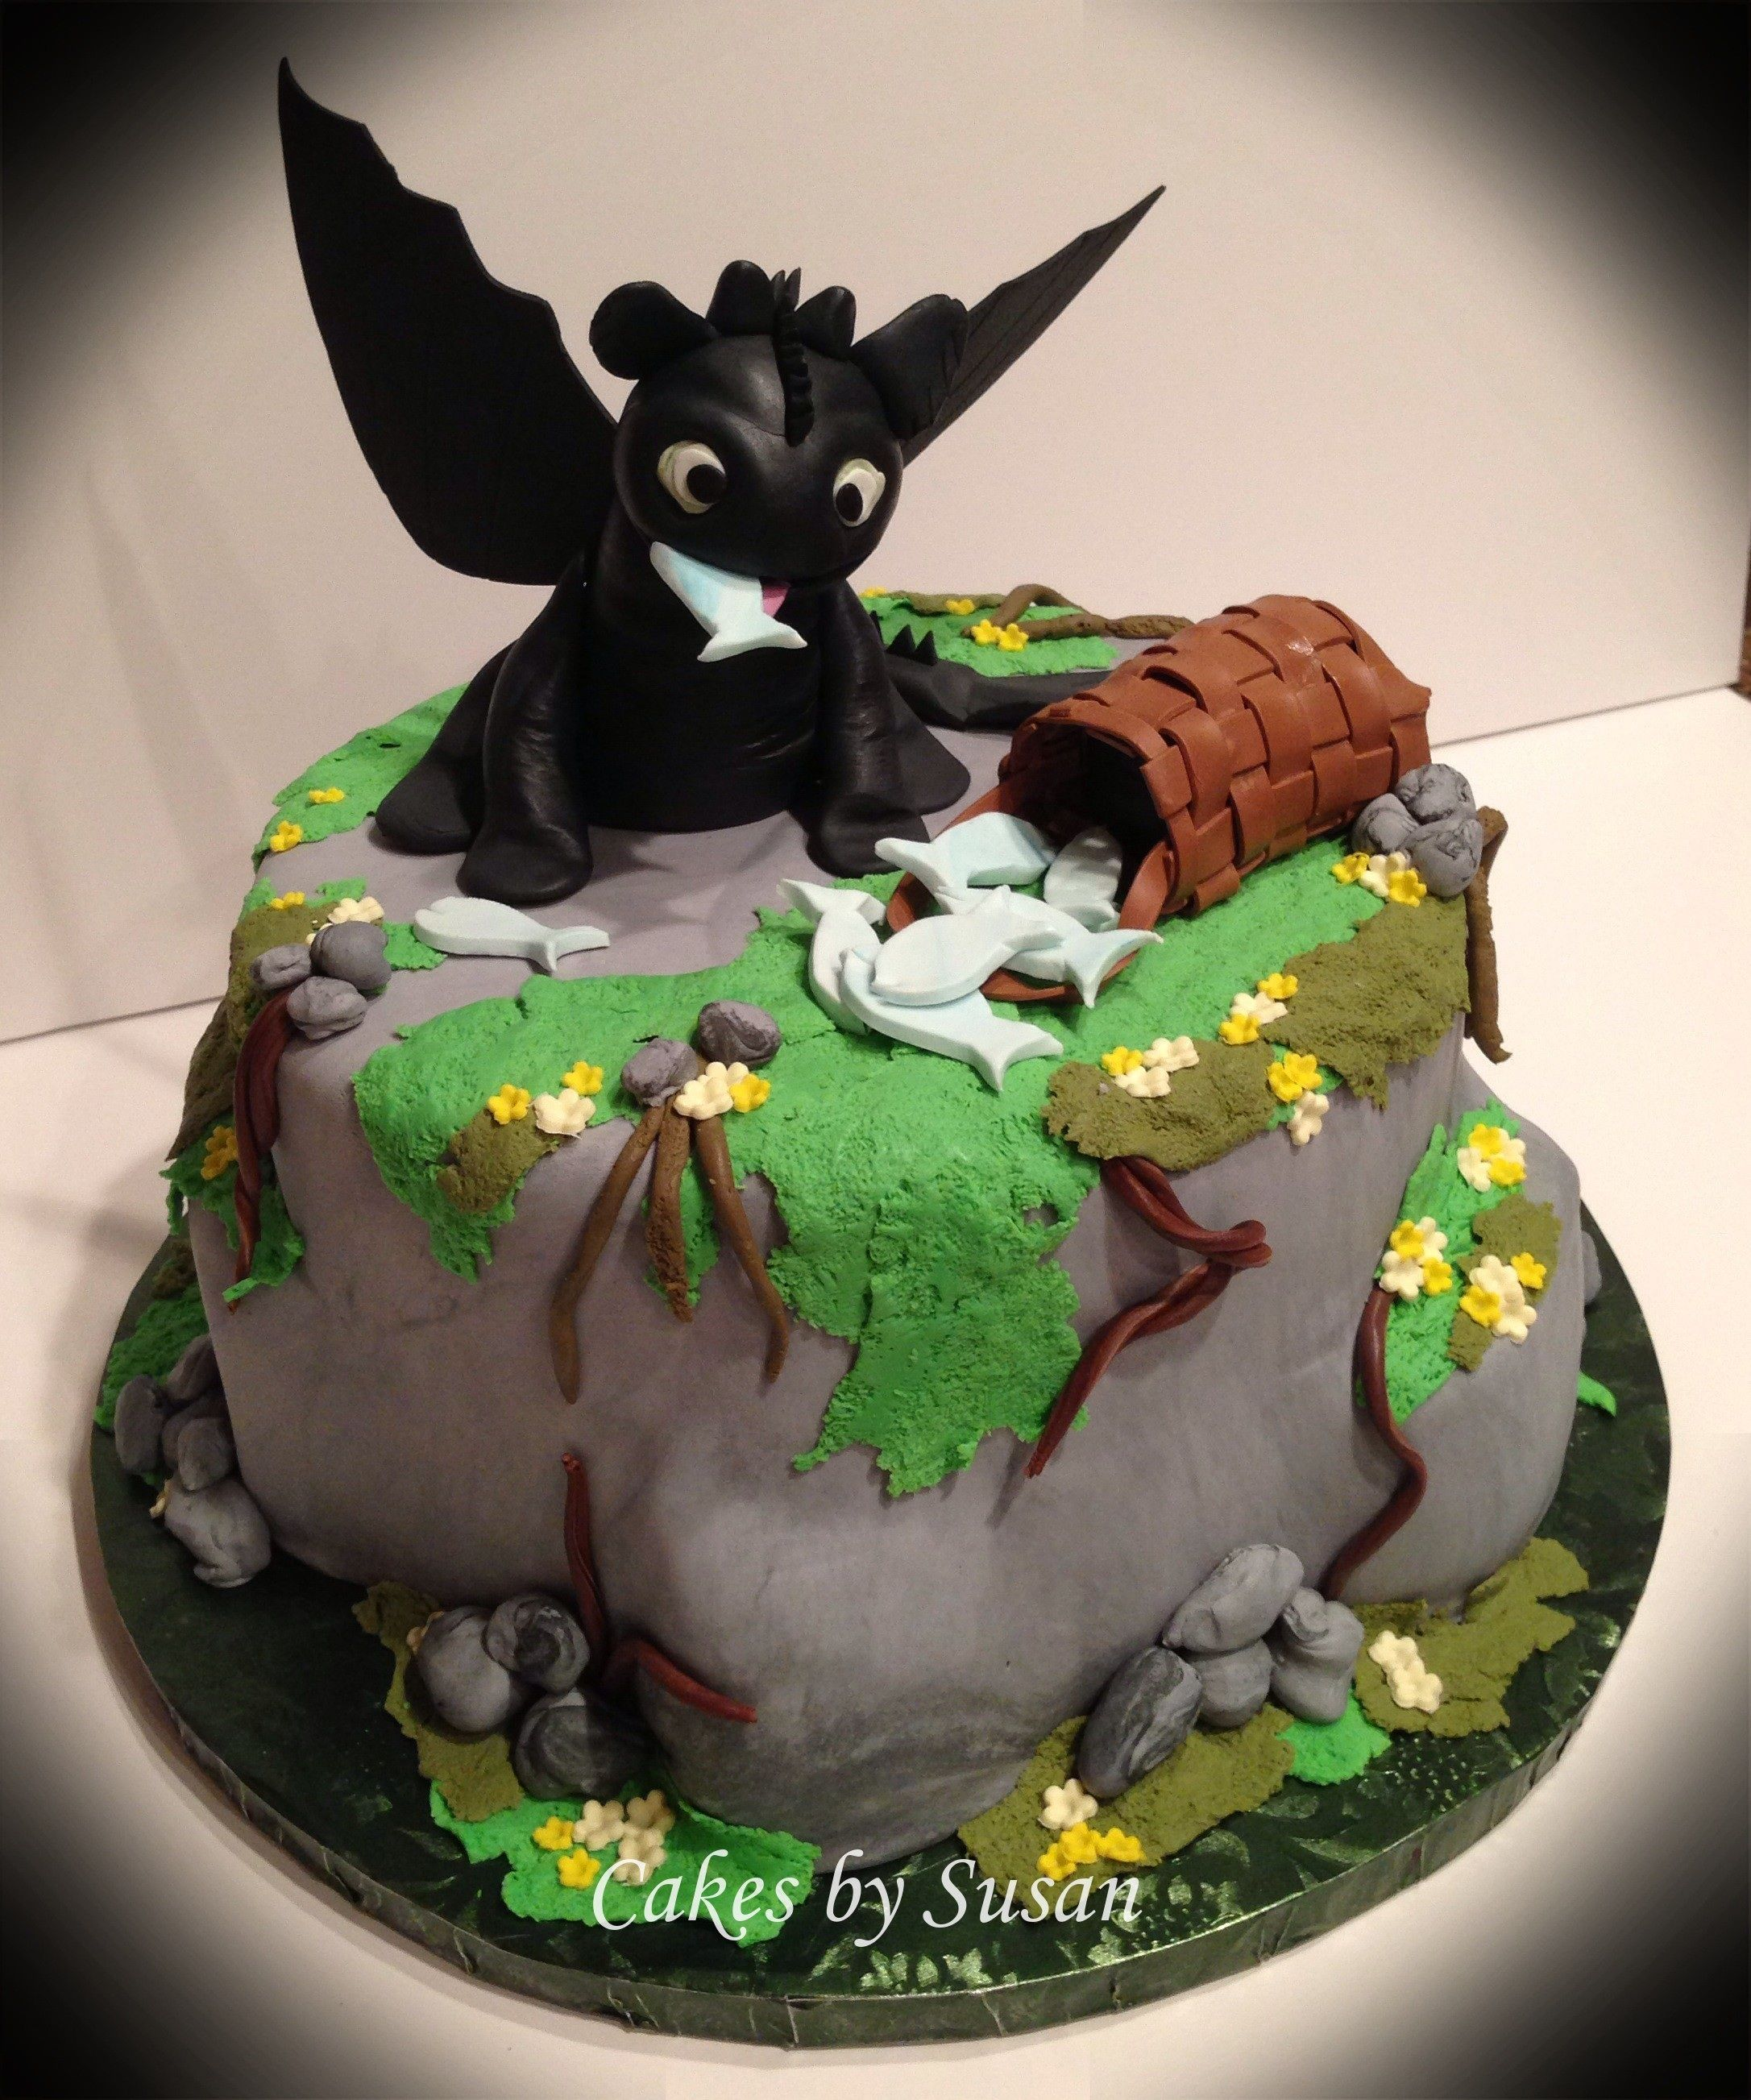 Birthday Cakes Toothless the dragon birthday cake Cakes